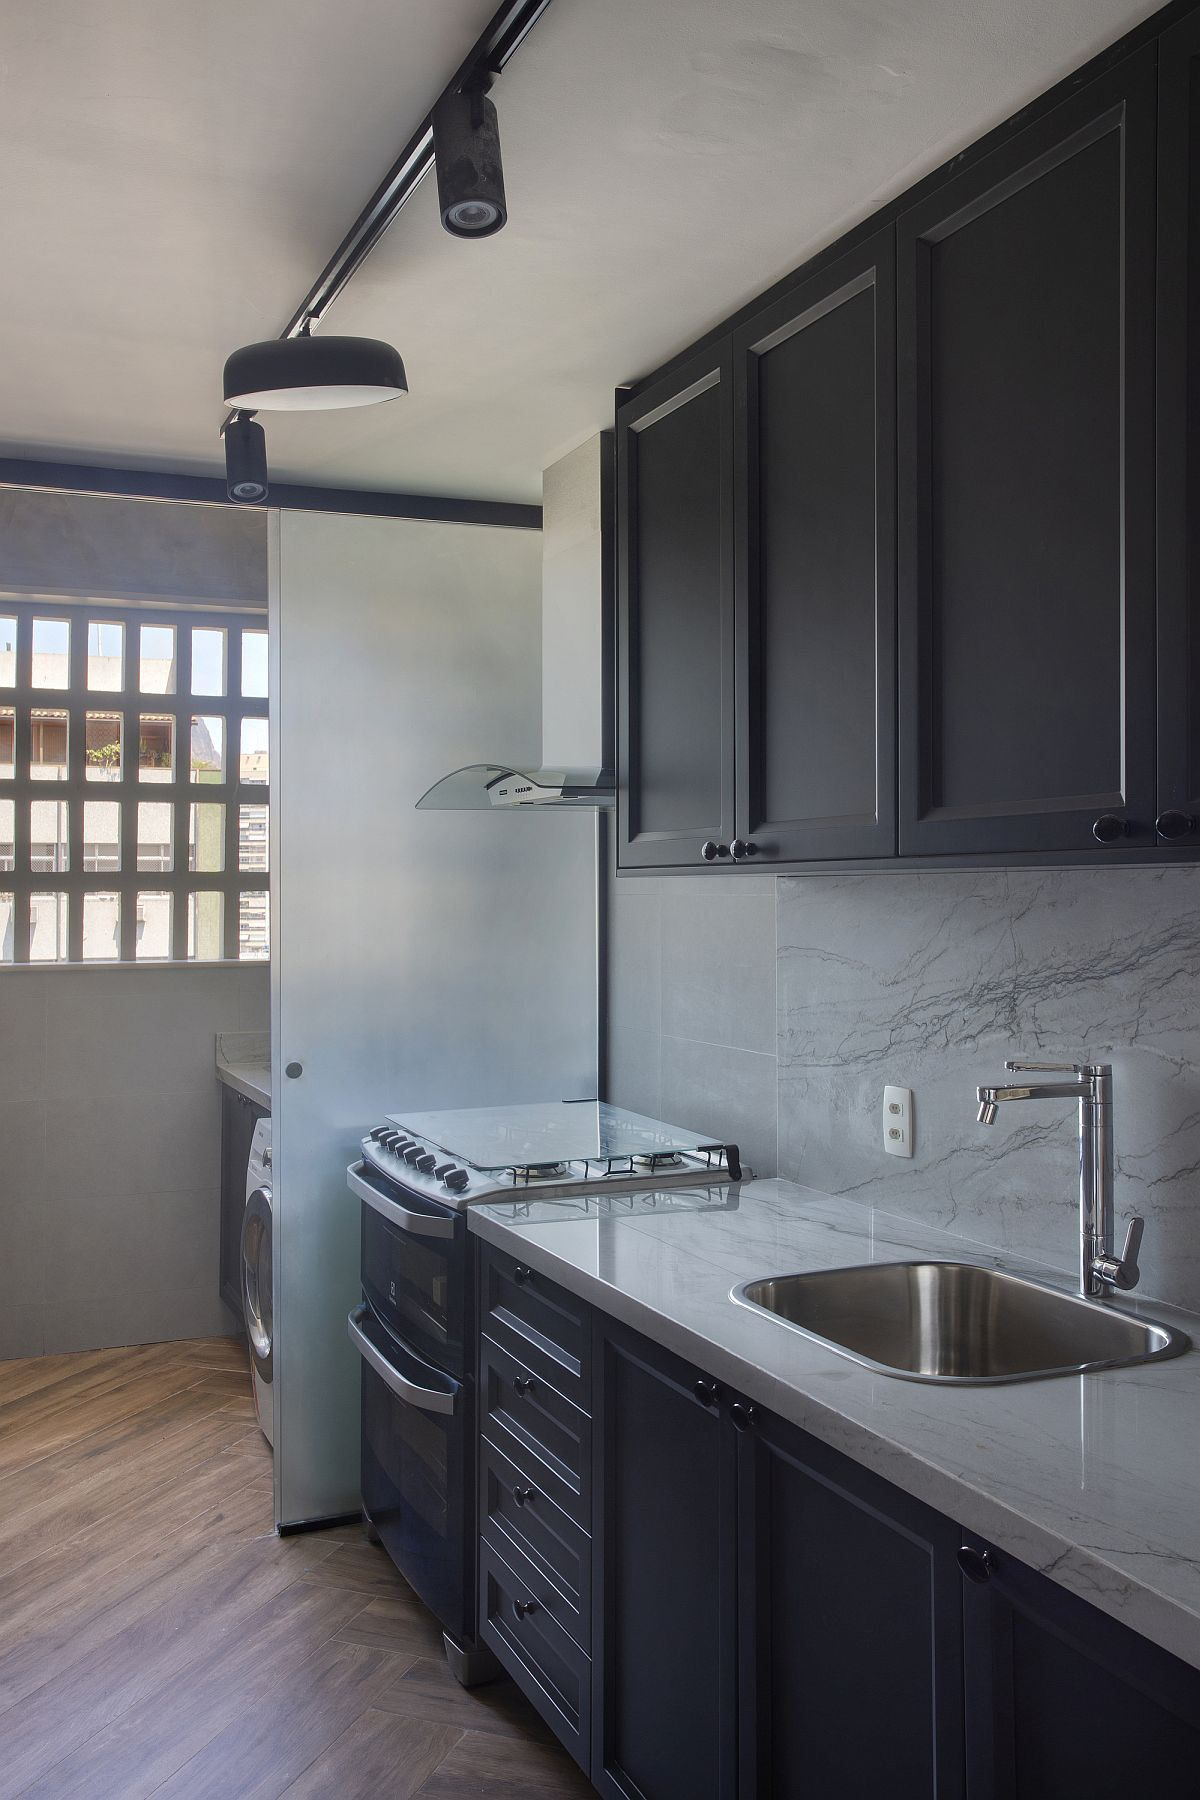 Finding space for the laundry unit inside the kitchen